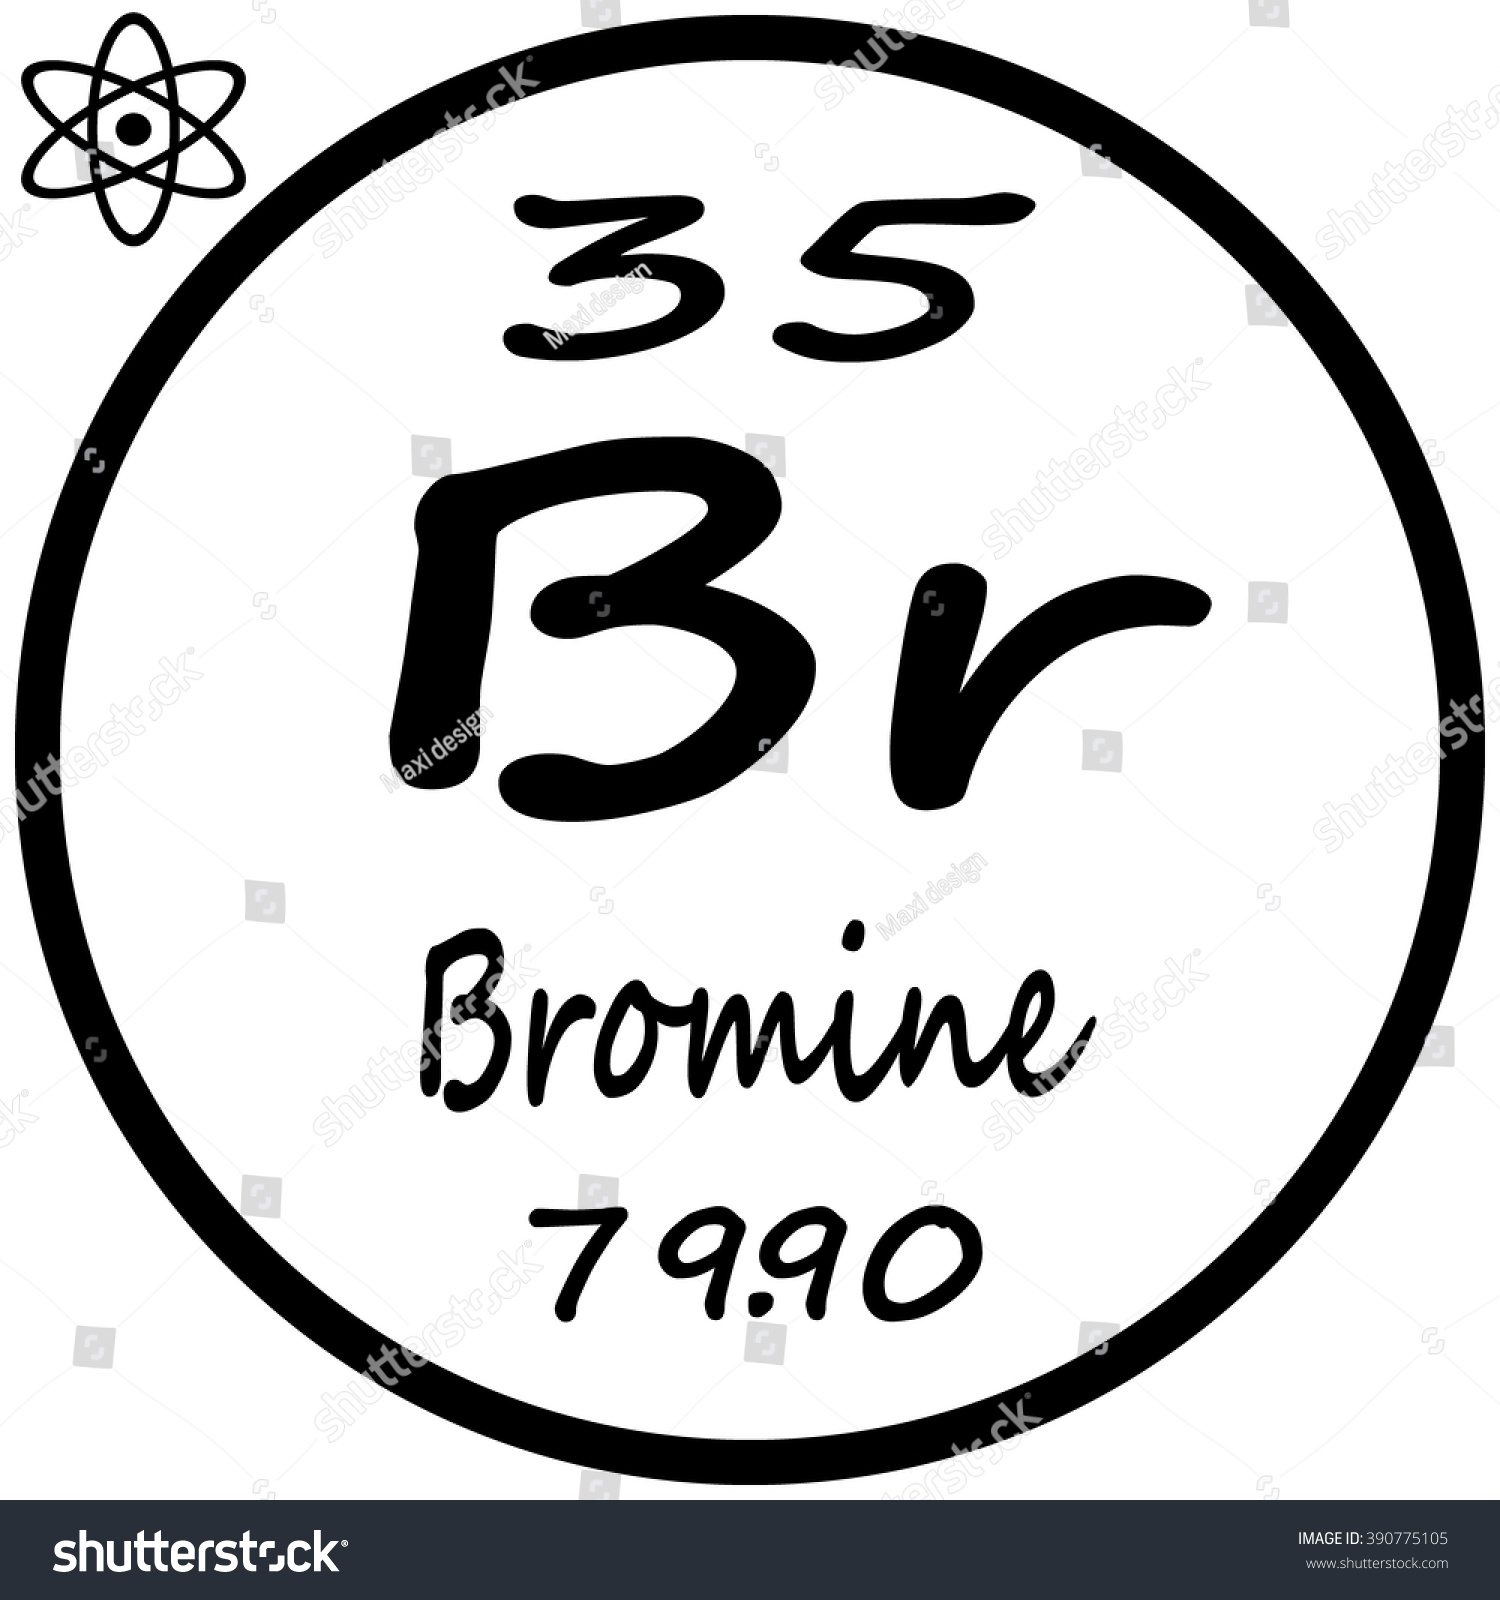 Periodic table elements bromine stock vector 390775105 shutterstock periodic table of elements bromine gamestrikefo Gallery